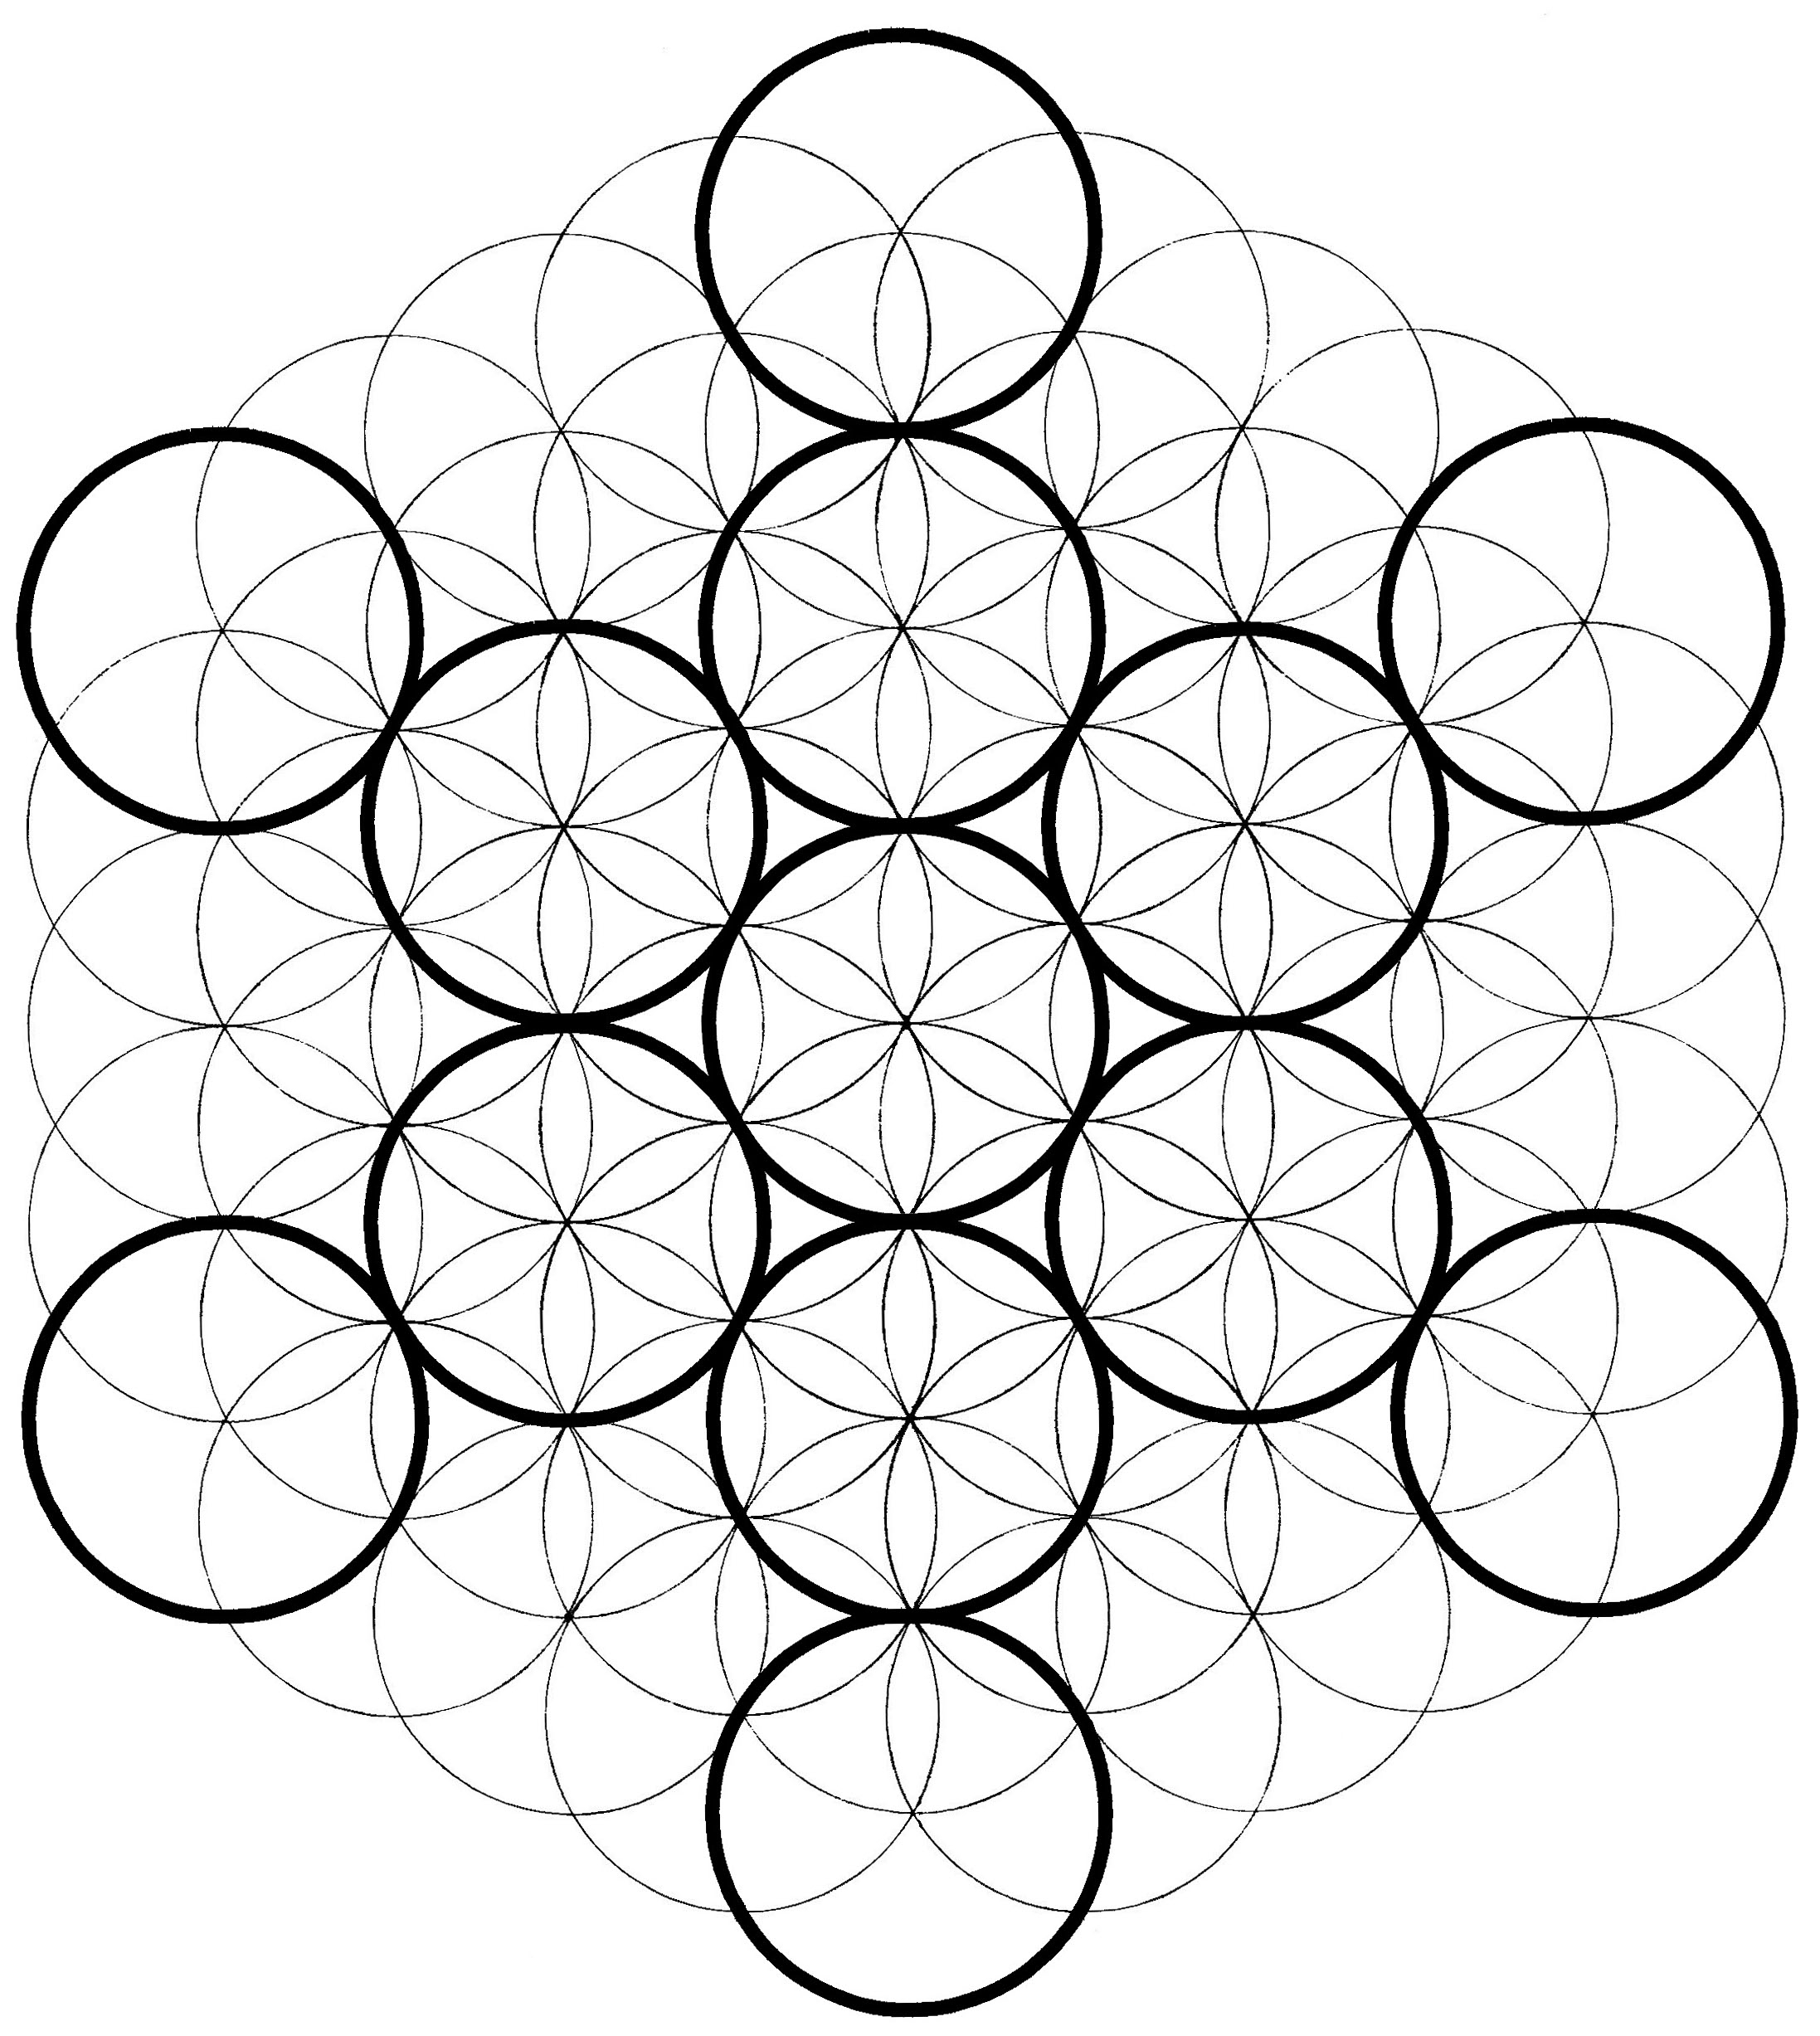 2194x2454 Drawing A Flower Of Life Metatron's Cube How To Draw It